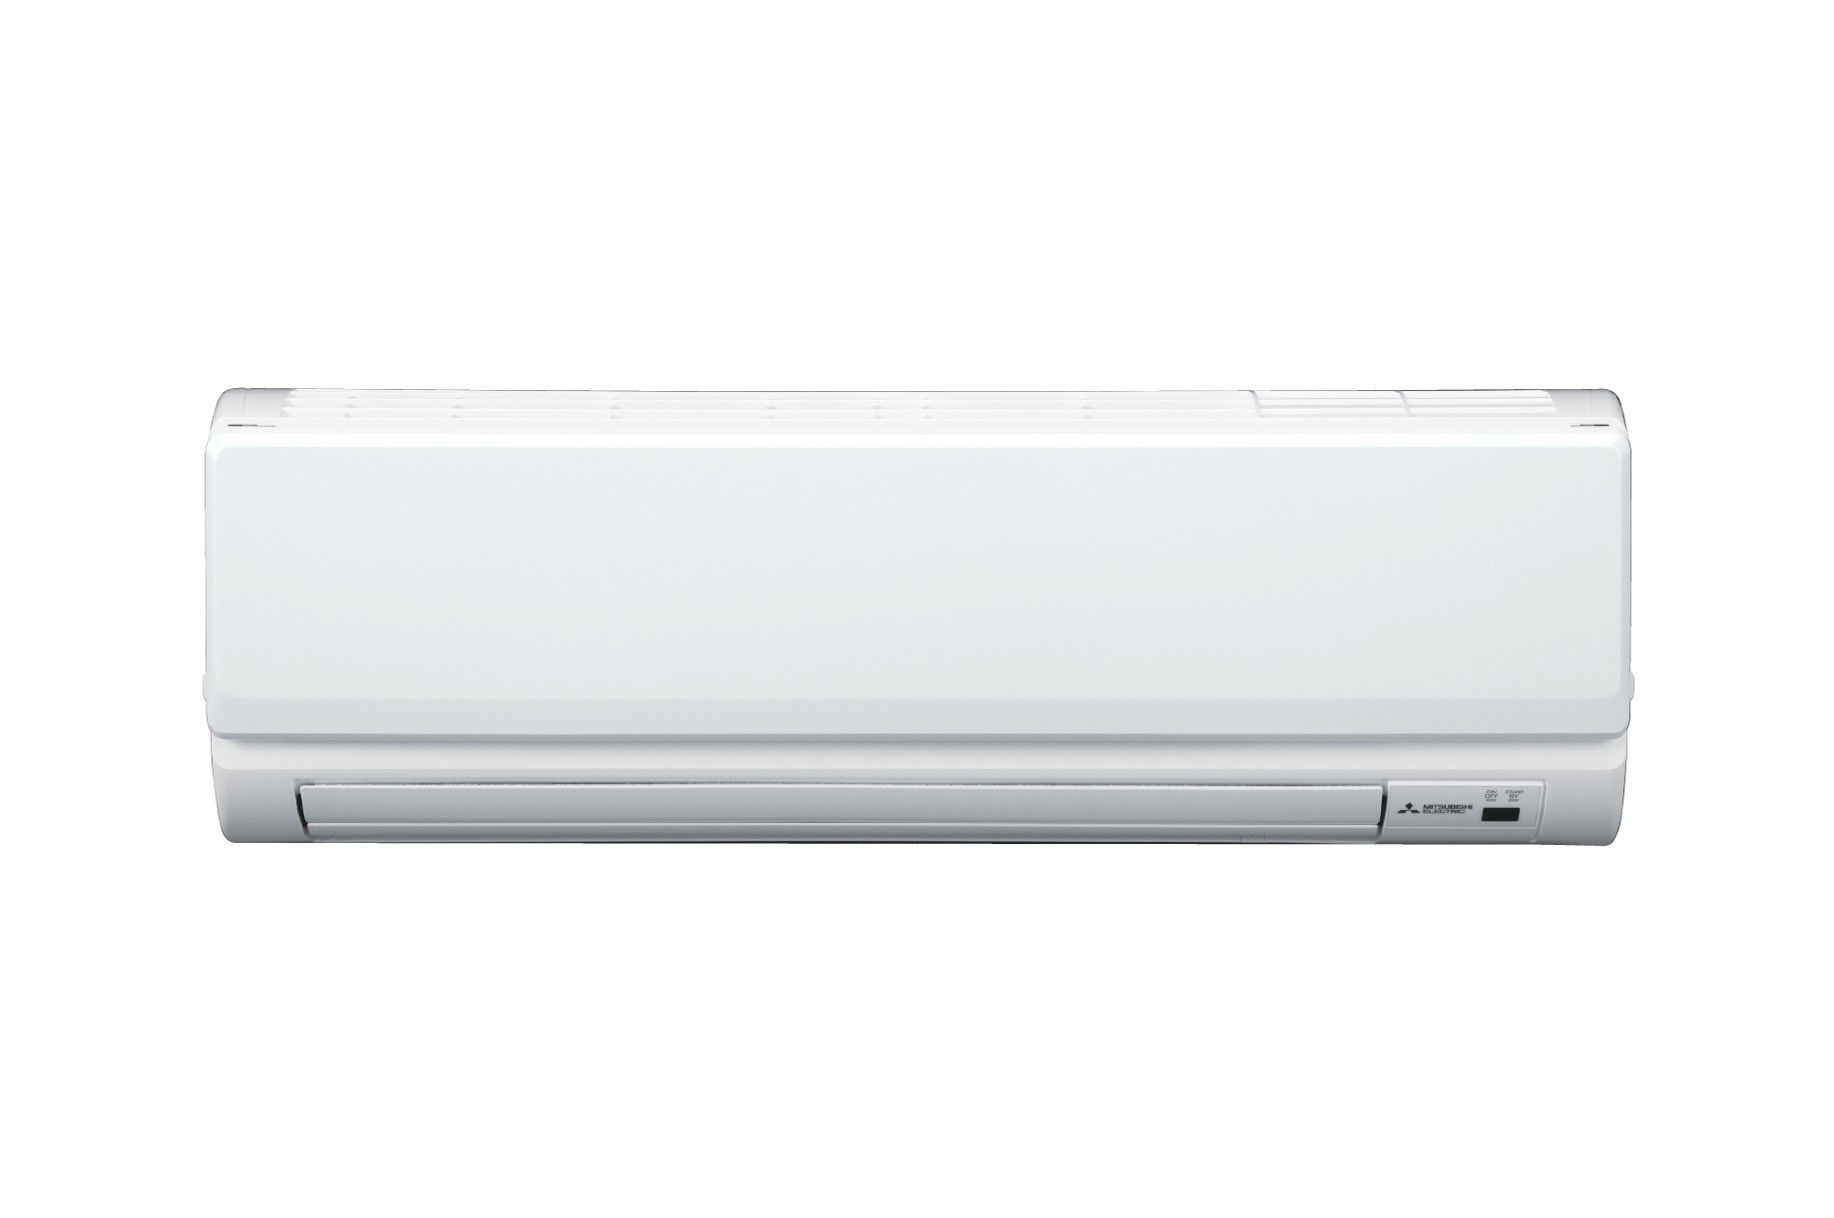 12K BTU Mitsubishi PKA-A Wall Mounted Indoor Unit